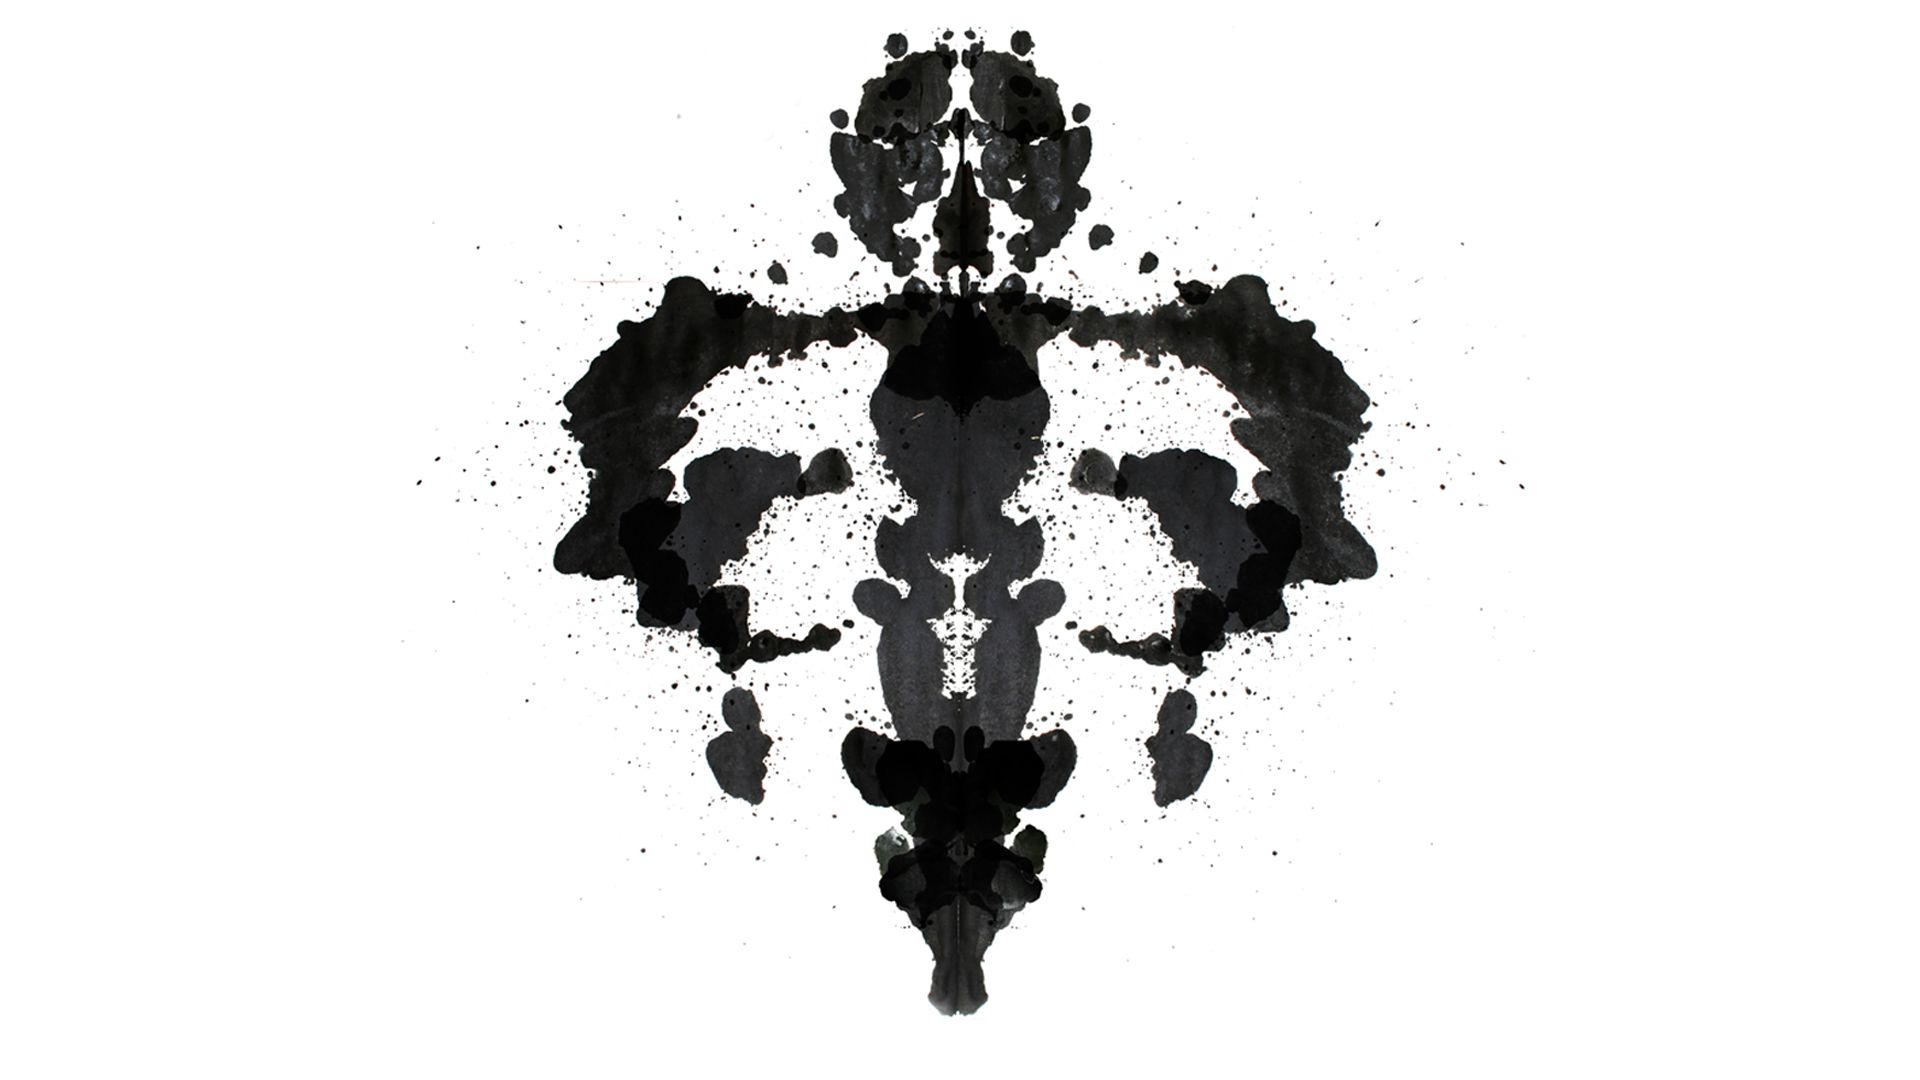 Rorschach wallpaper background